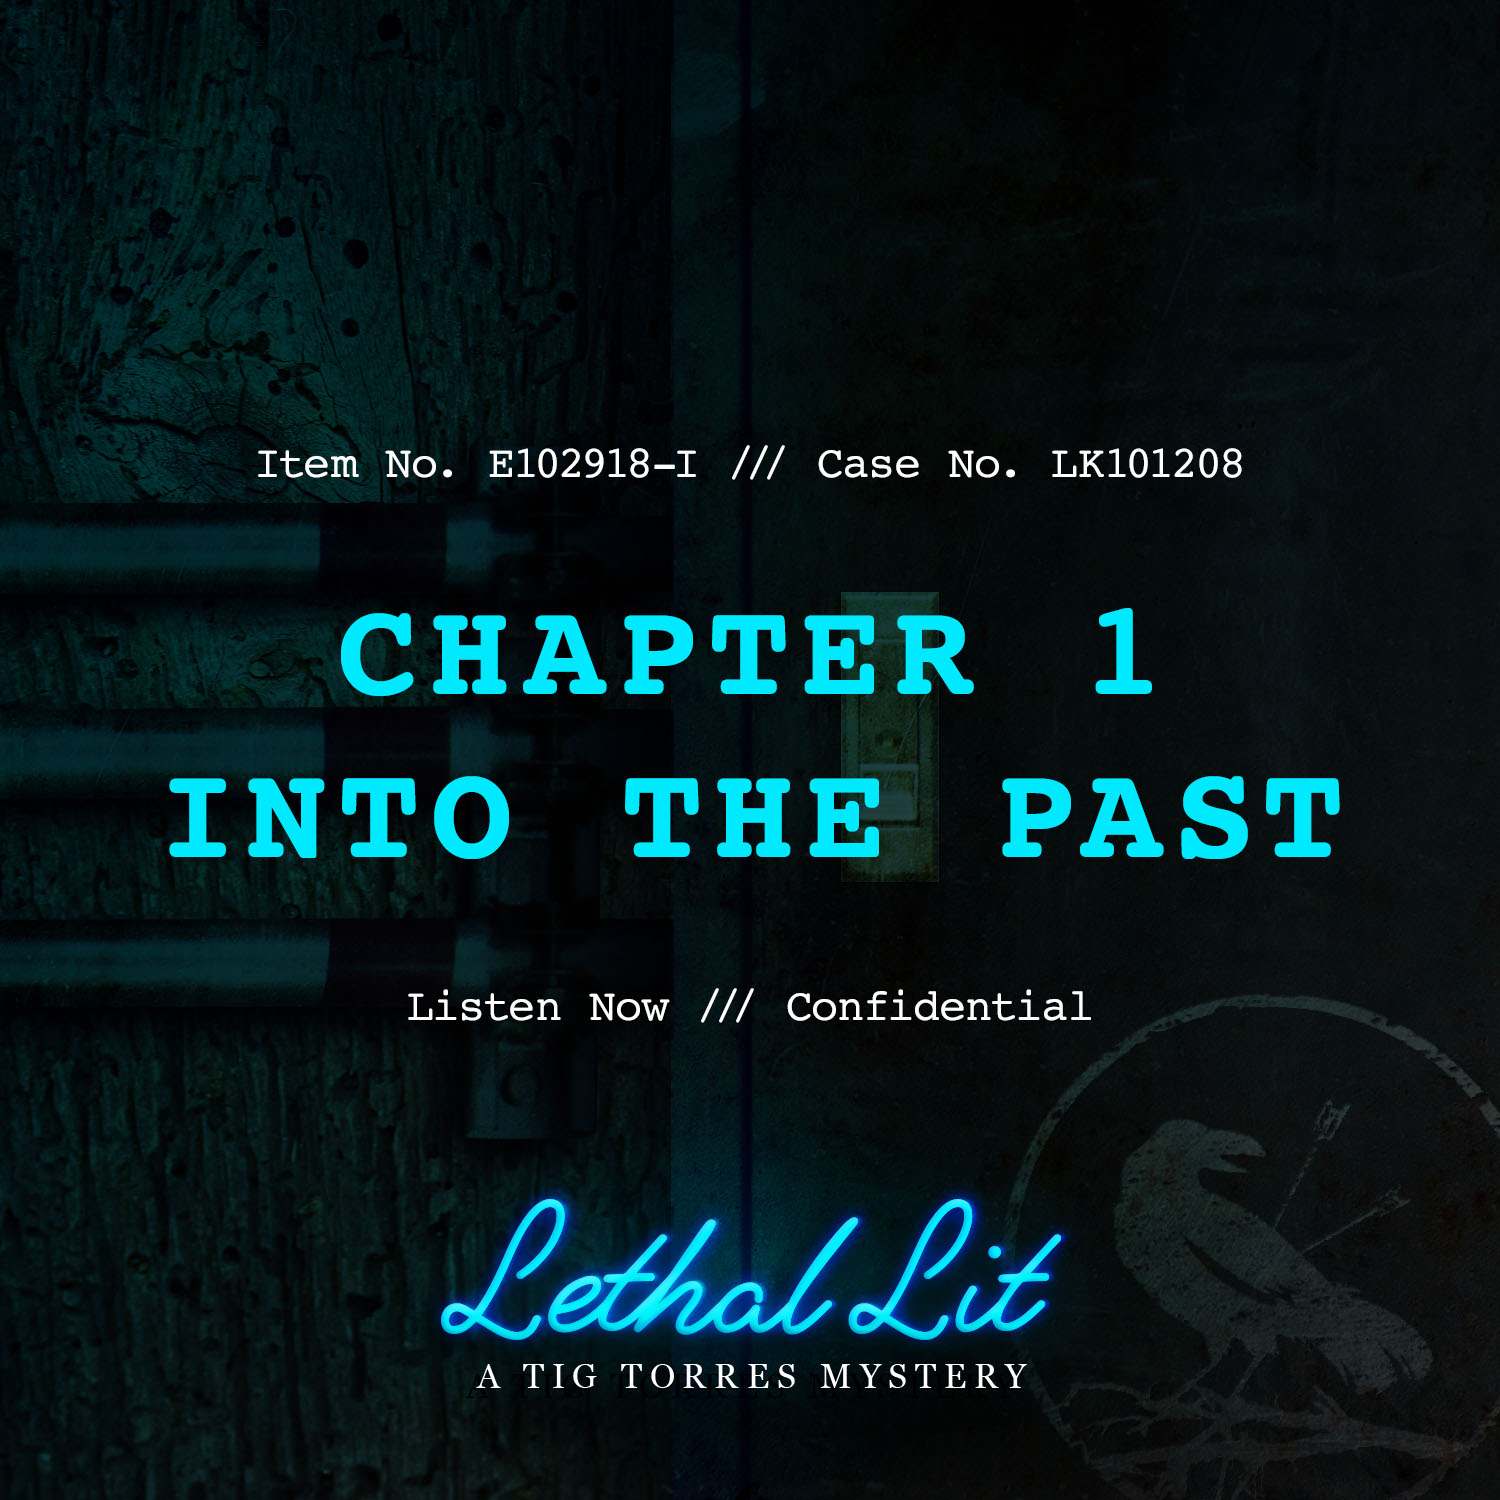 CHAPTER 1: INTO THE PAST   LINKS TO LISTEN:   IHeart  |  Apple    |  Spotify  |  Stitcher    |    Google